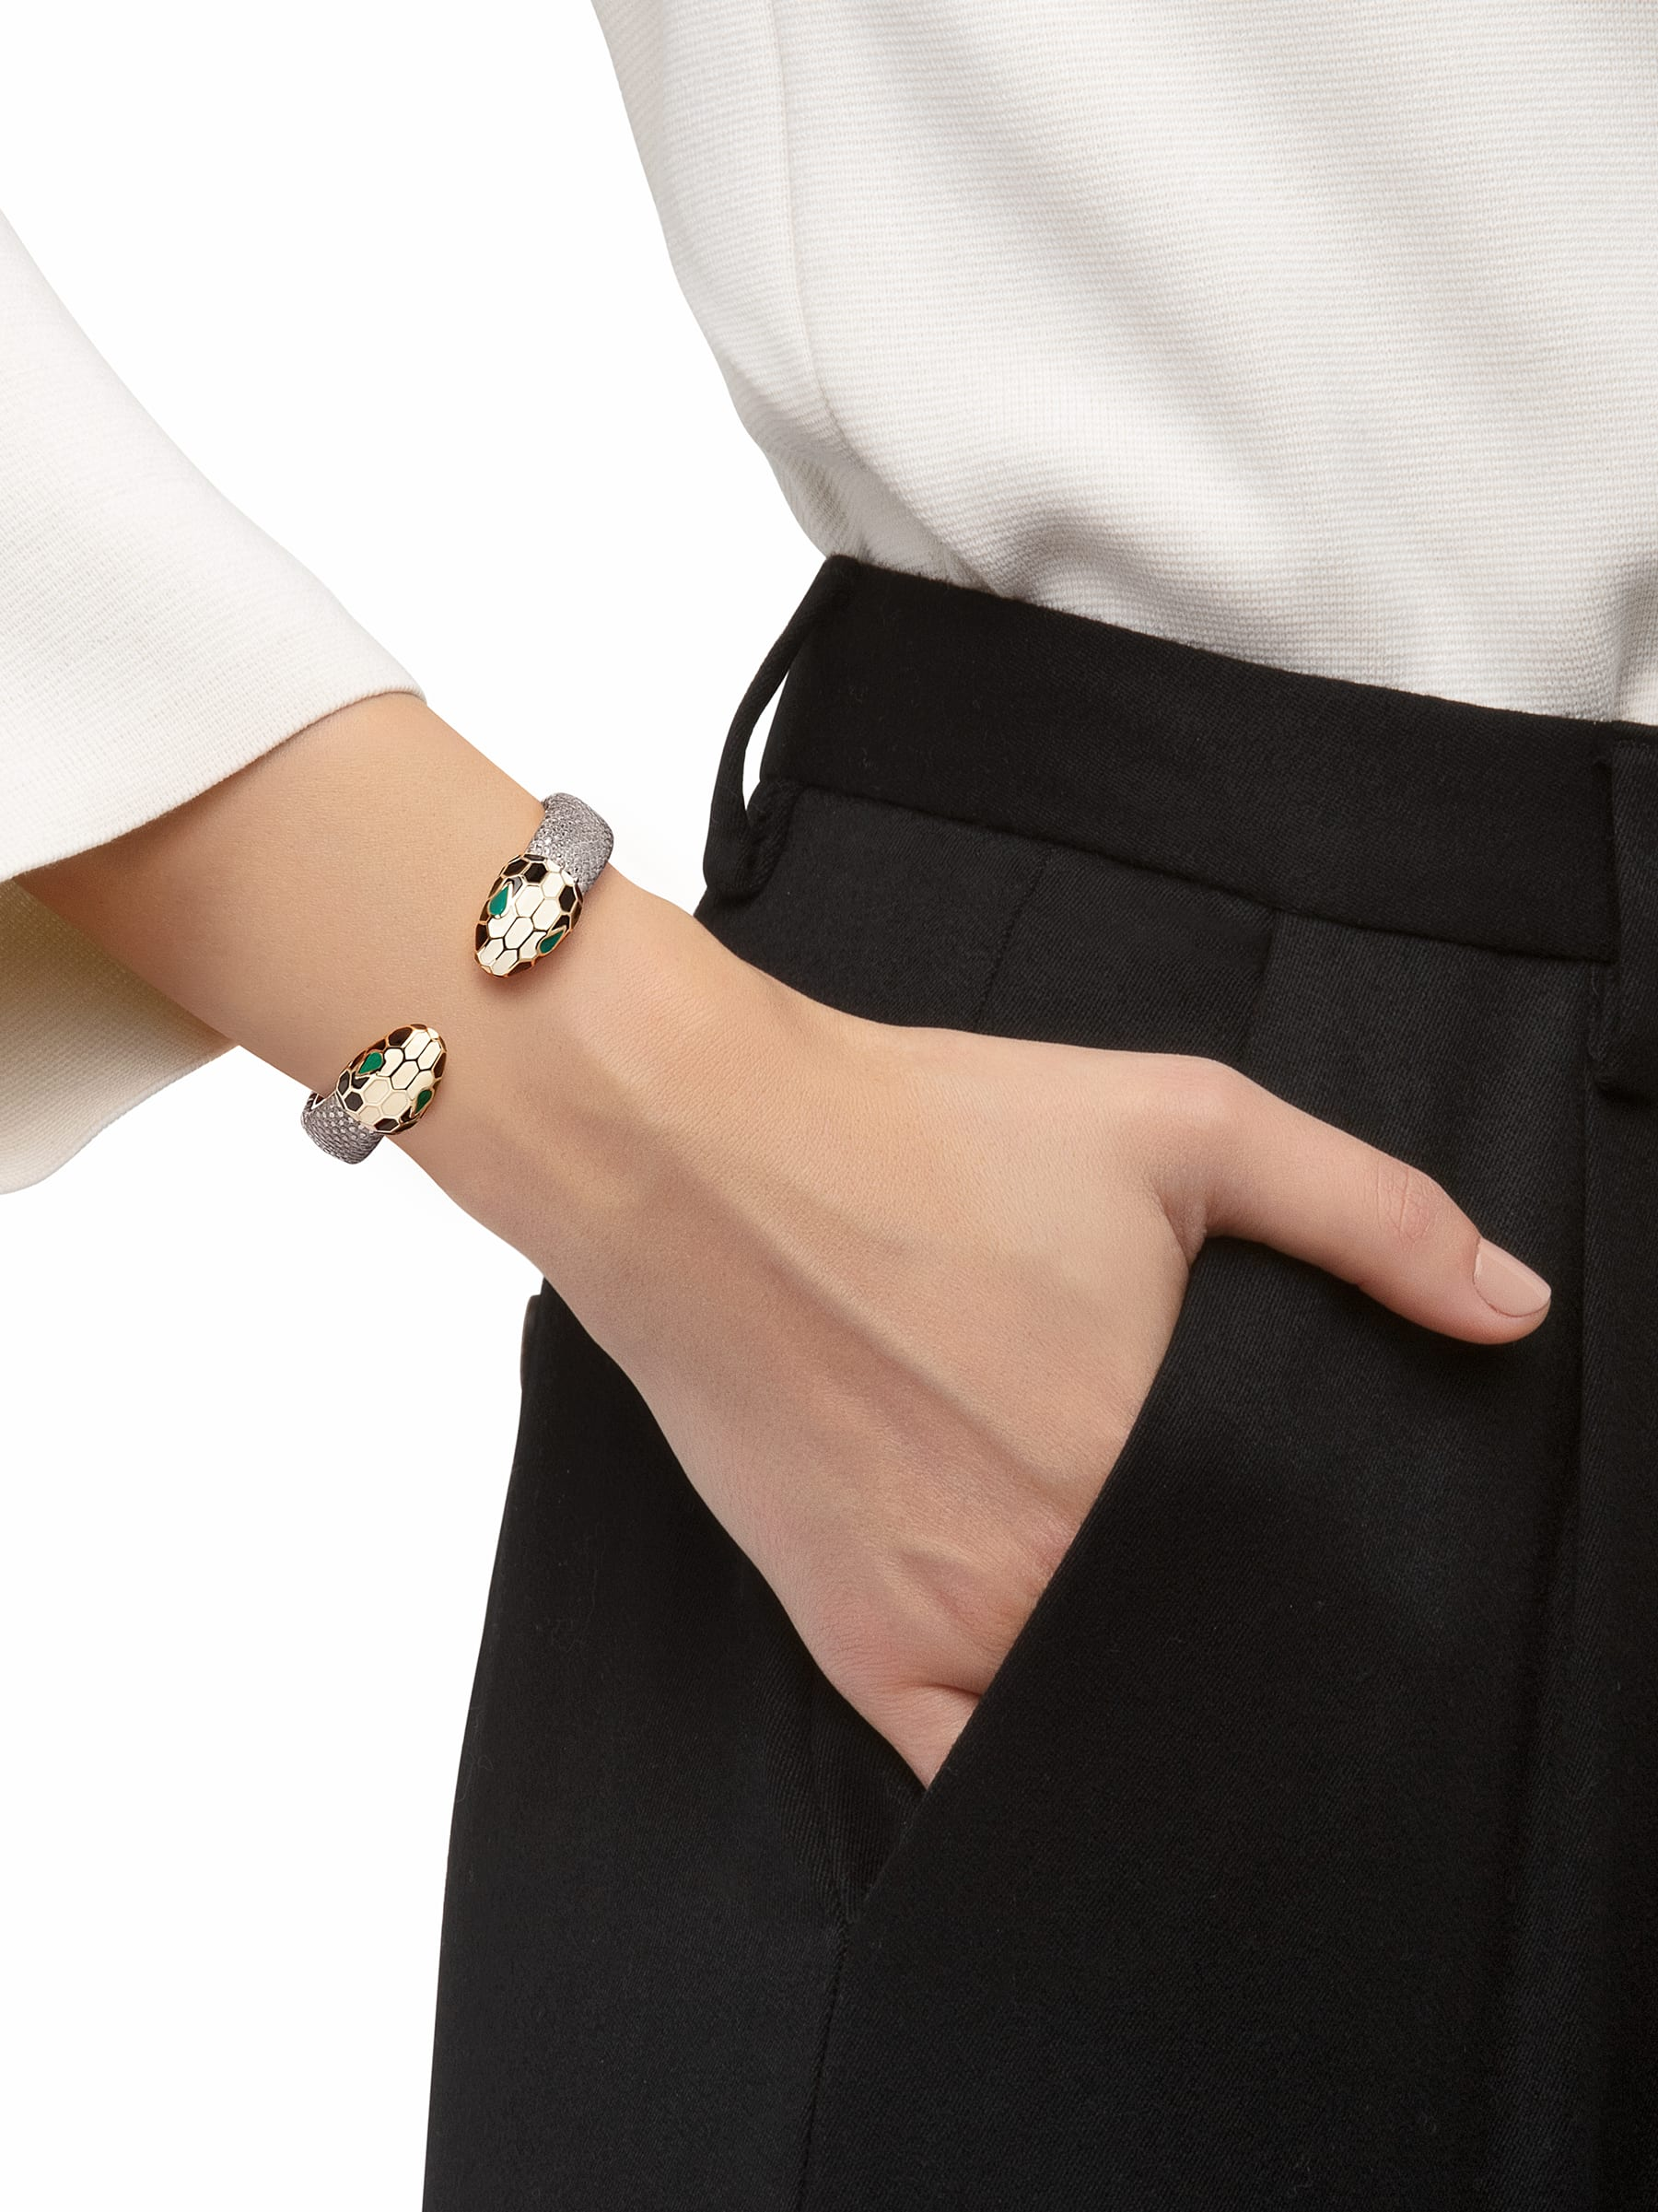 Bracelet in silver metallic karung skin with iconic contraire brass light gold plated Serpenti heads motif in black and white enamel, with green enamel eyes. SPContr-MK-S image 2